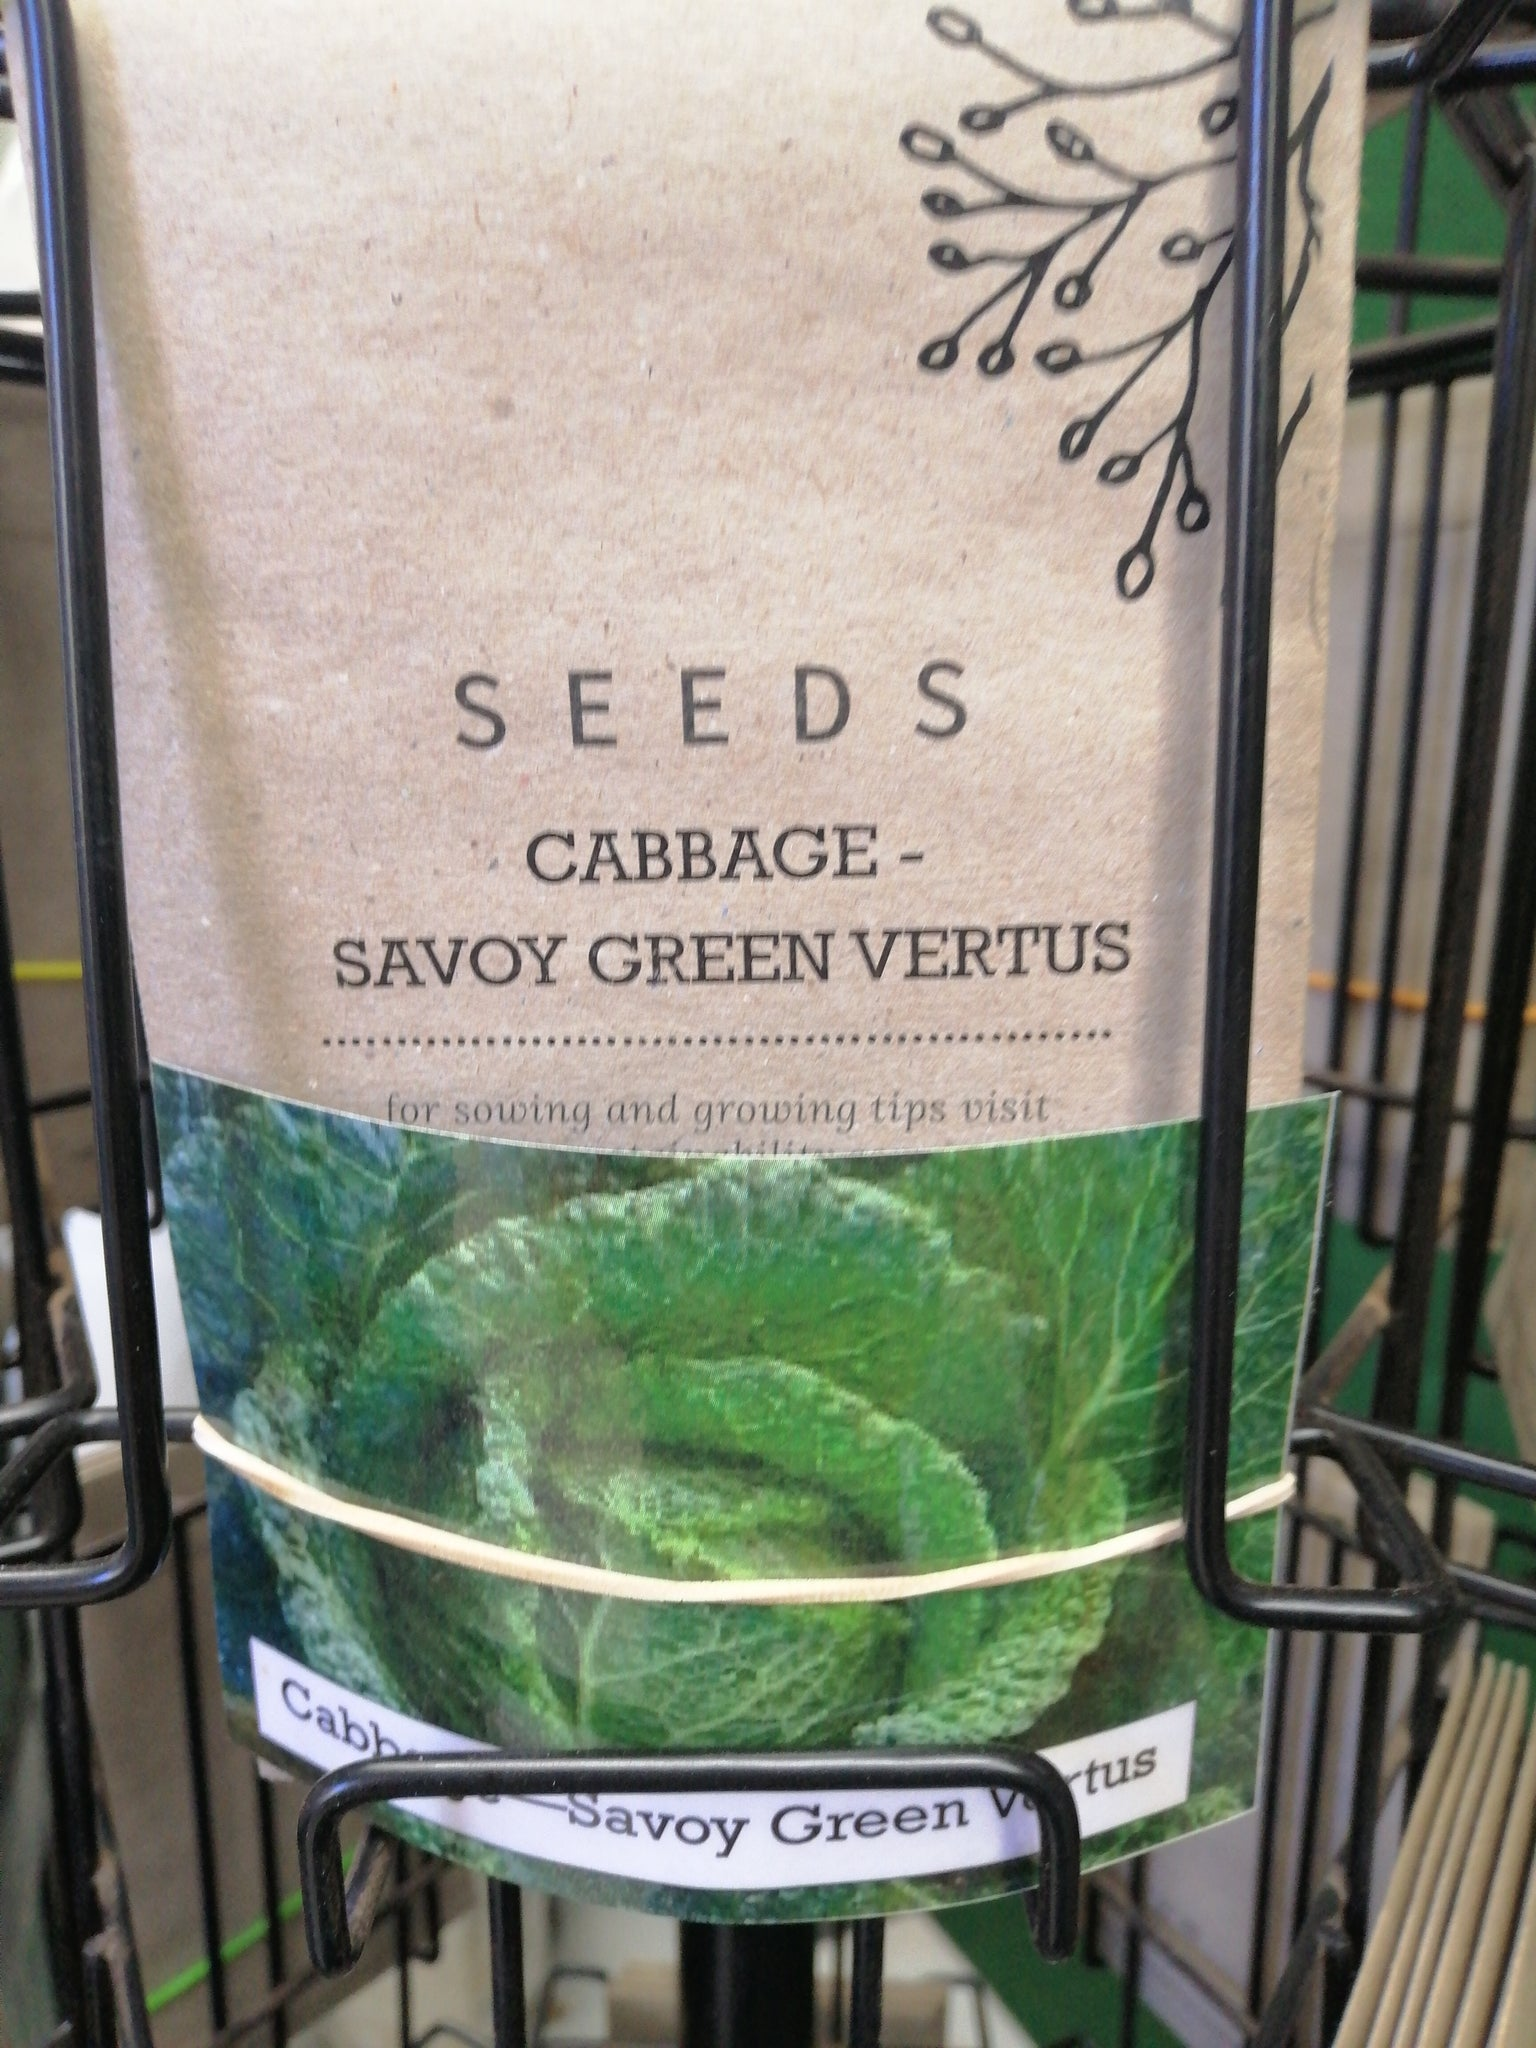 Cabbage - Green Savoy vertus